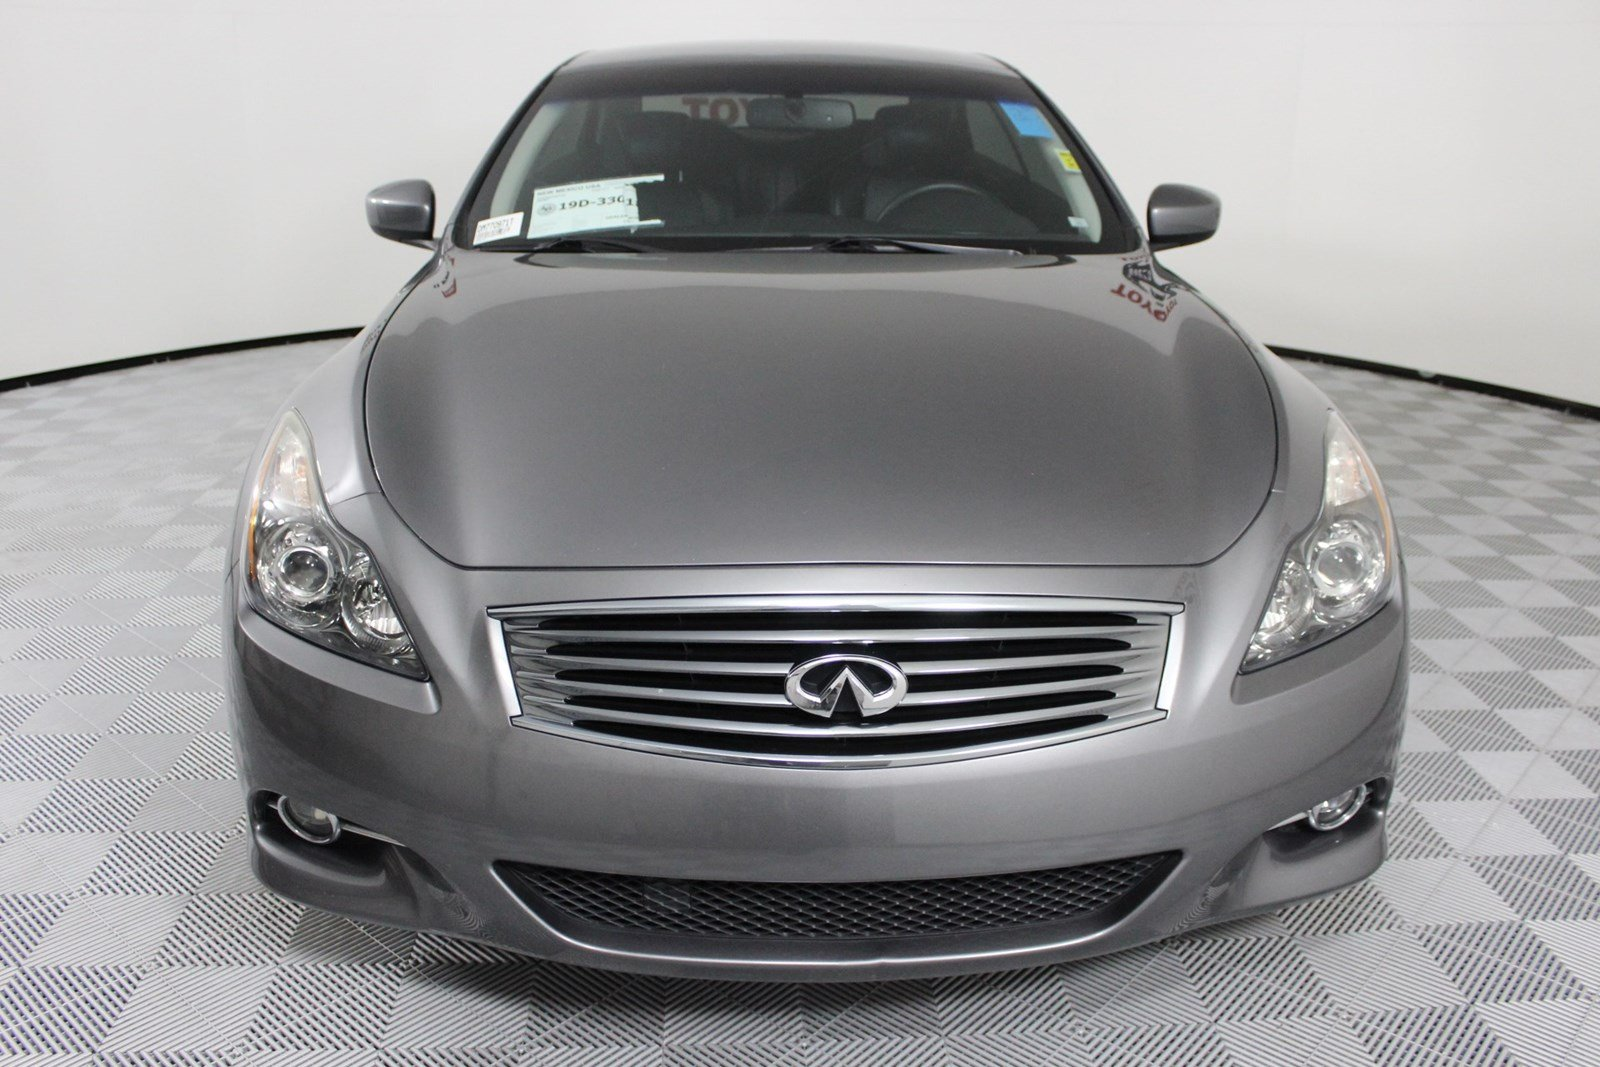 Pre-Owned 2013 INFINITI G37 Convertible Base